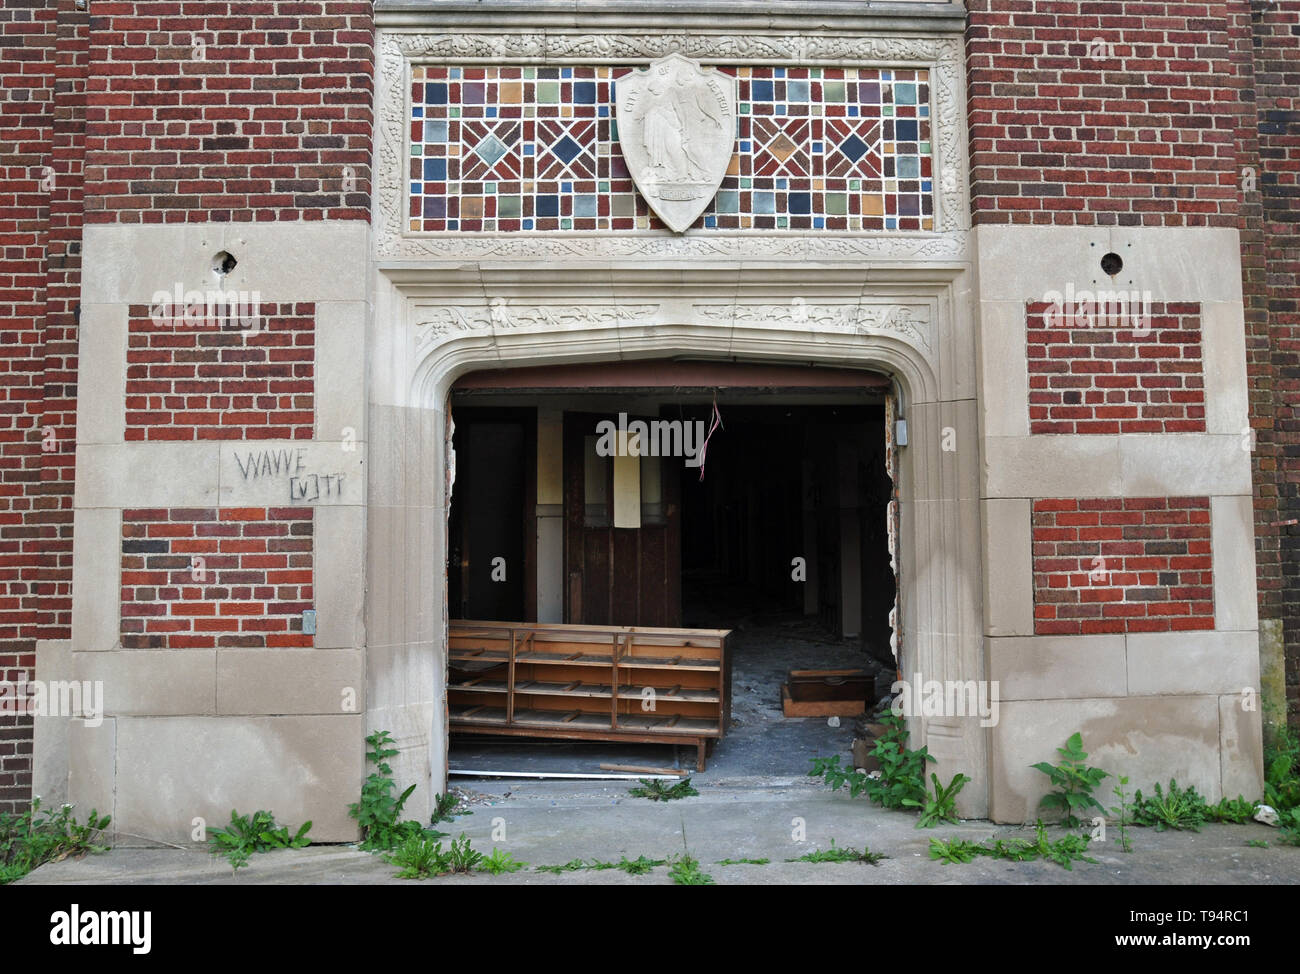 Detail of the gaping front entrance to an abandoned public school in Detroit, Michigan. All of the building's windows and doors are broken or missing. - Stock Image